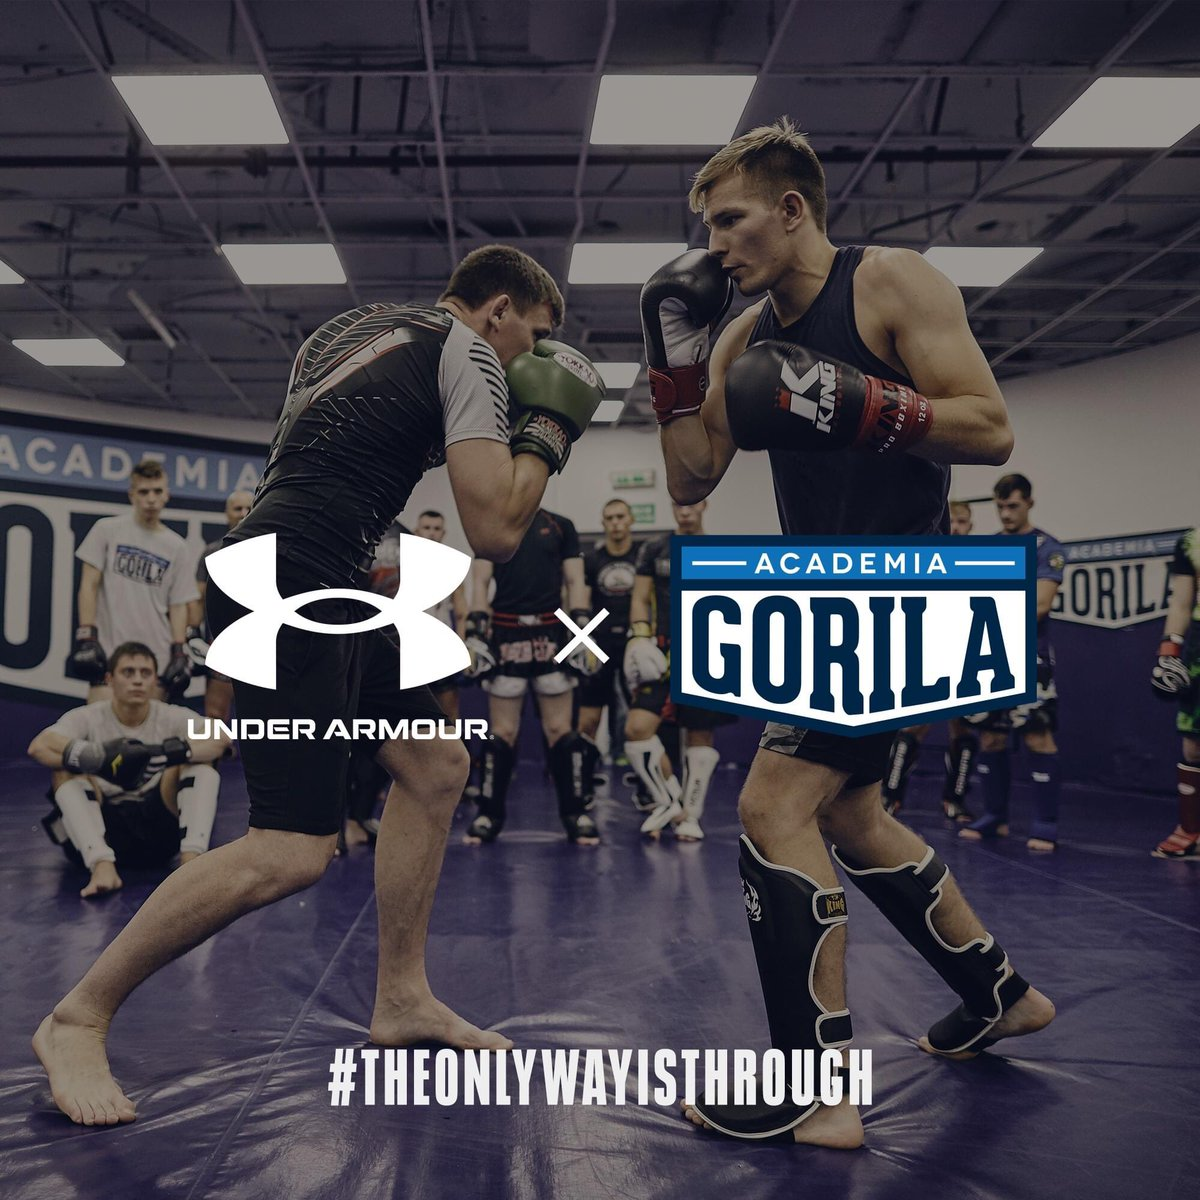 It looks like Under Armour are really getting involved with Polish MMA.   In addition to sponsoring former KSW champ & current UFC fighter @gamer_mma, the apparel giant has entered a partnership with the Academia Gorila gym. #sportsbiz #underarmour #mma #sponsorships https://t.co/sBf1yhs3Nu